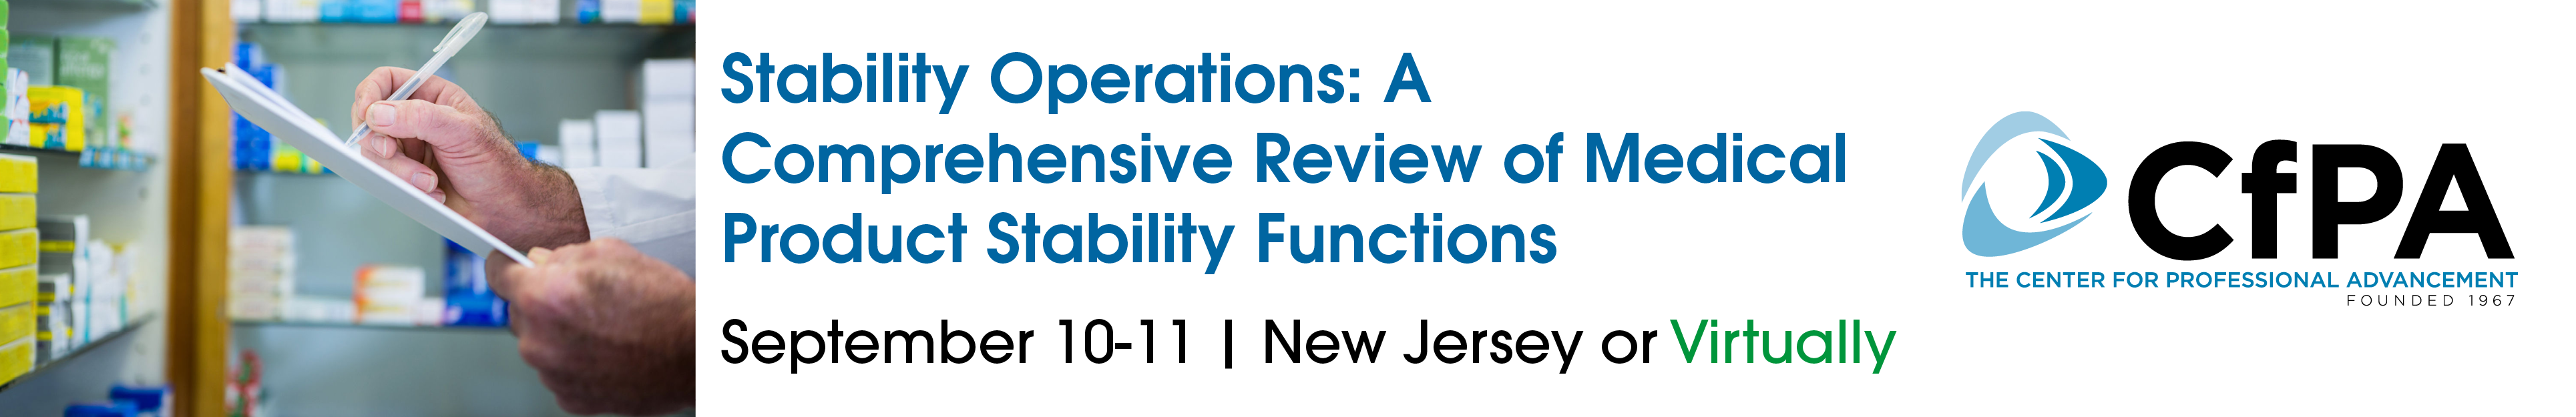 Stability Operations: A Comprehensive Review of Medical Product Stability Functions